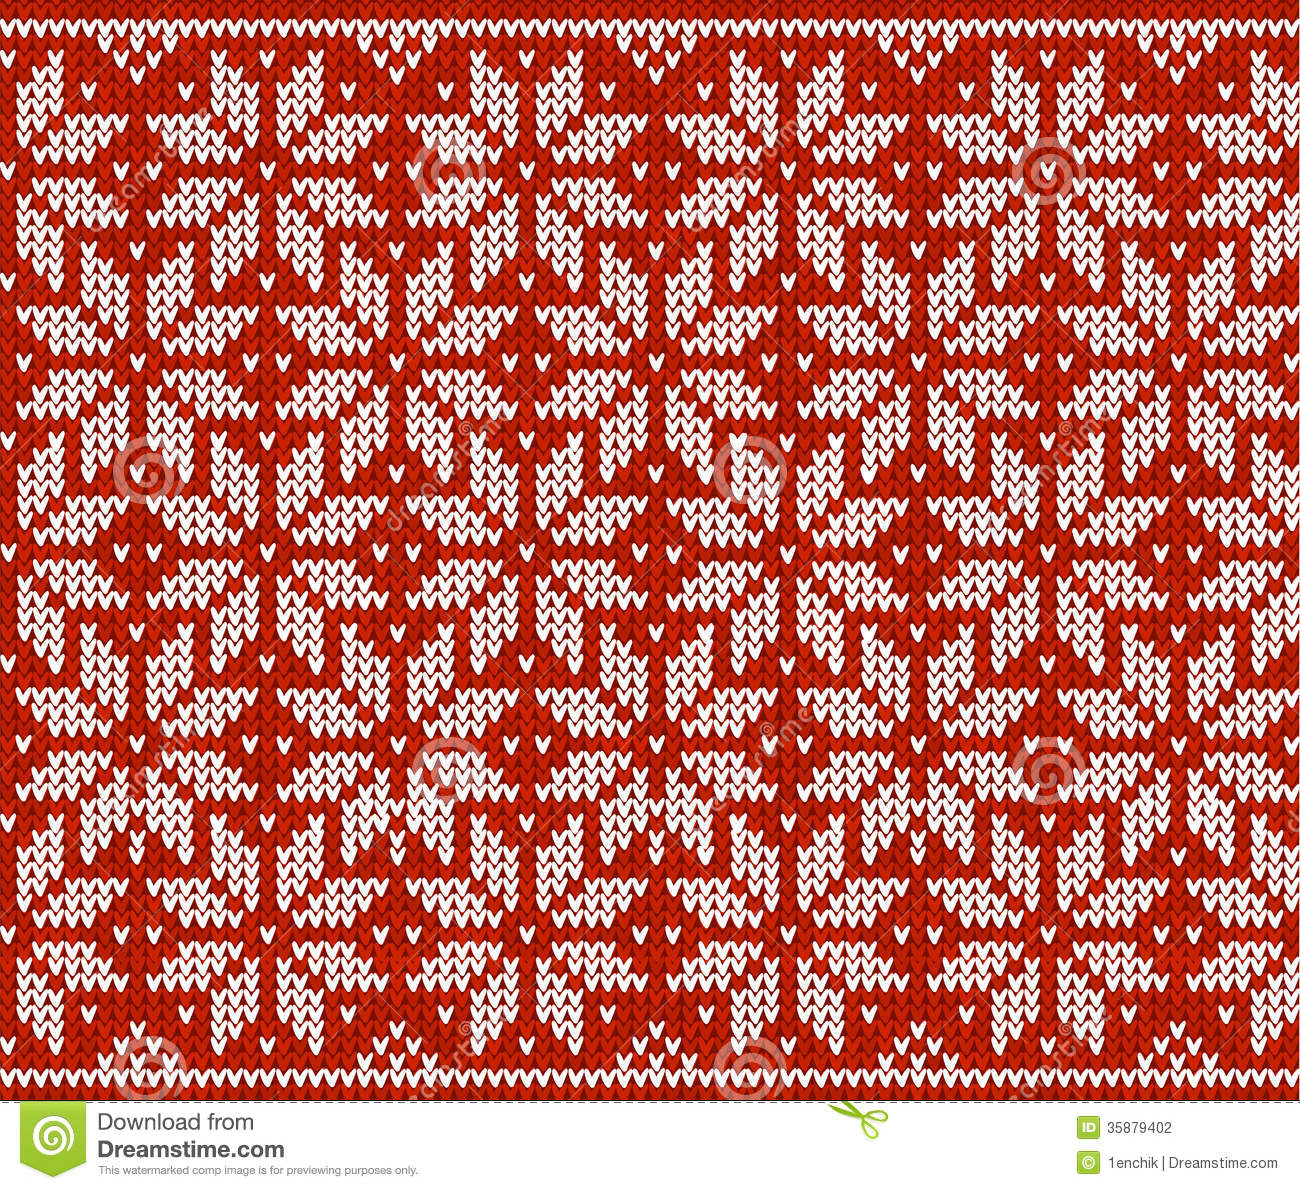 Red and white knitted snowflakes seamless pattern